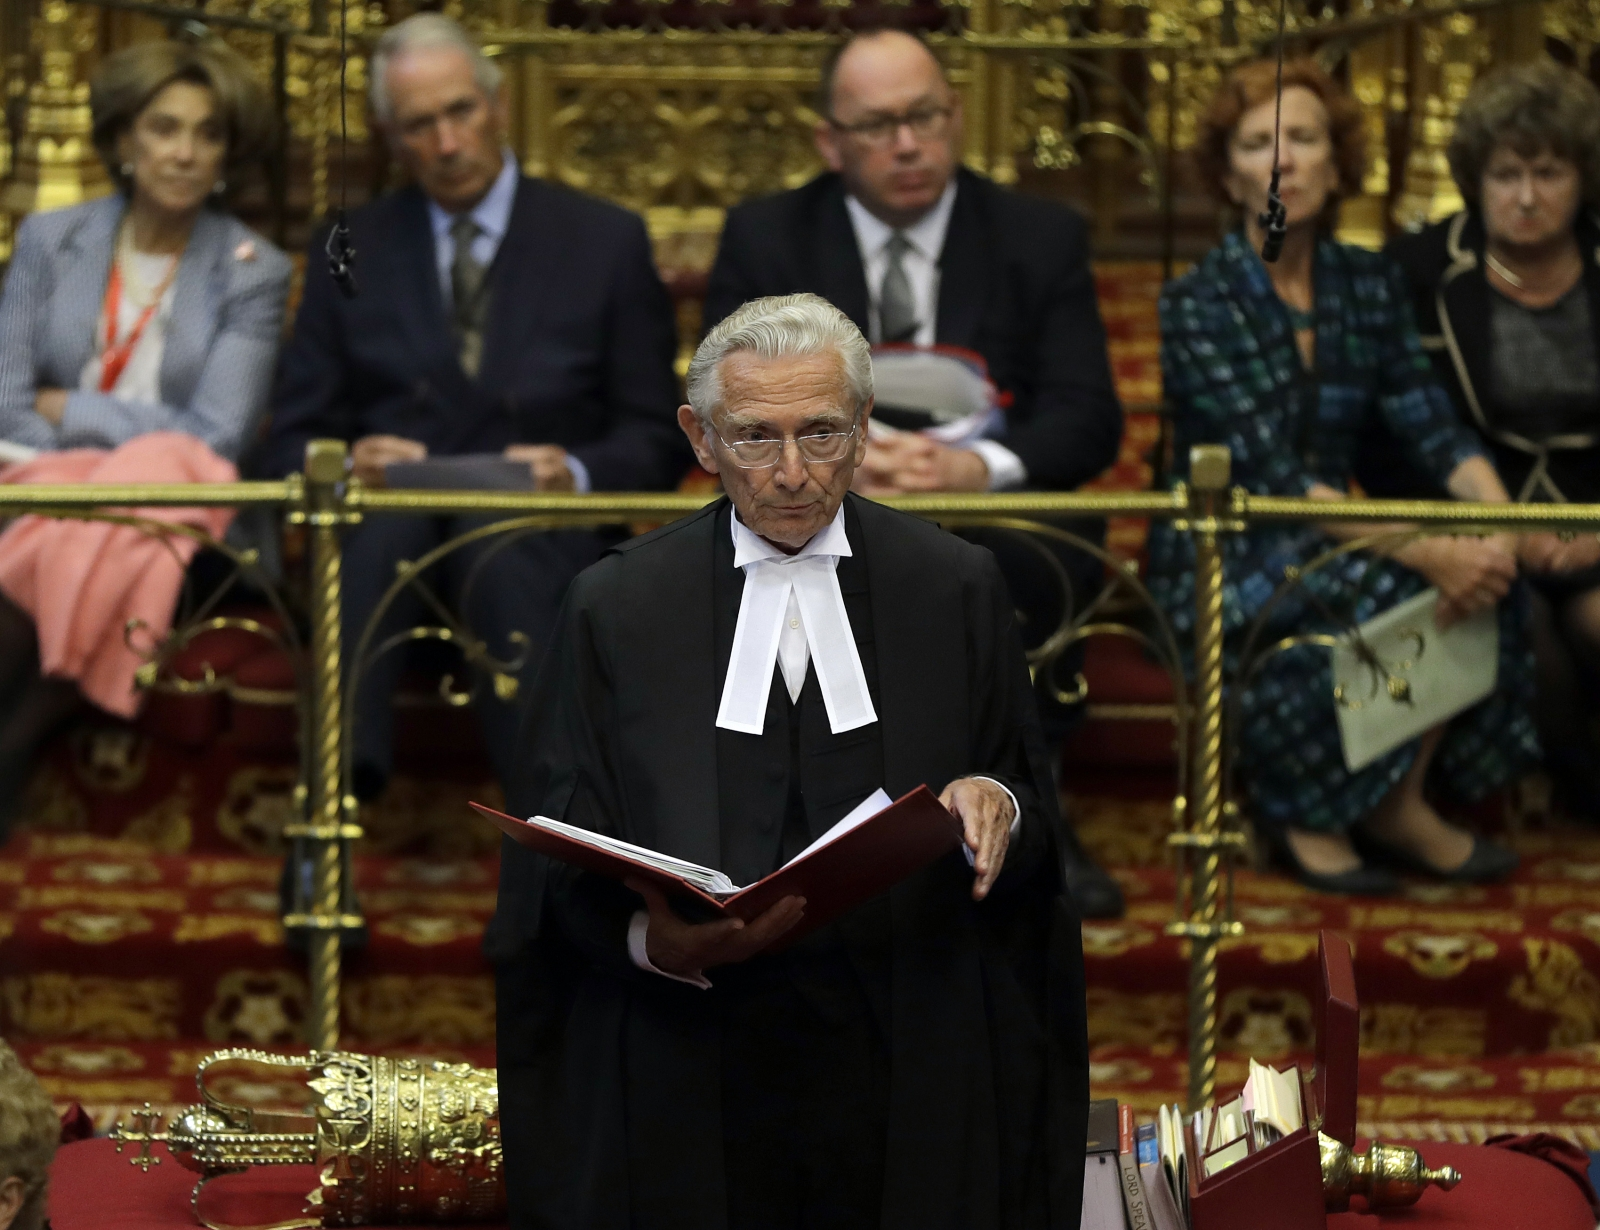 house of lords and commons Comparison between house of commons and house of lords (4) - free download as word doc (doc), pdf file (pdf), text file (txt) or read online for free.